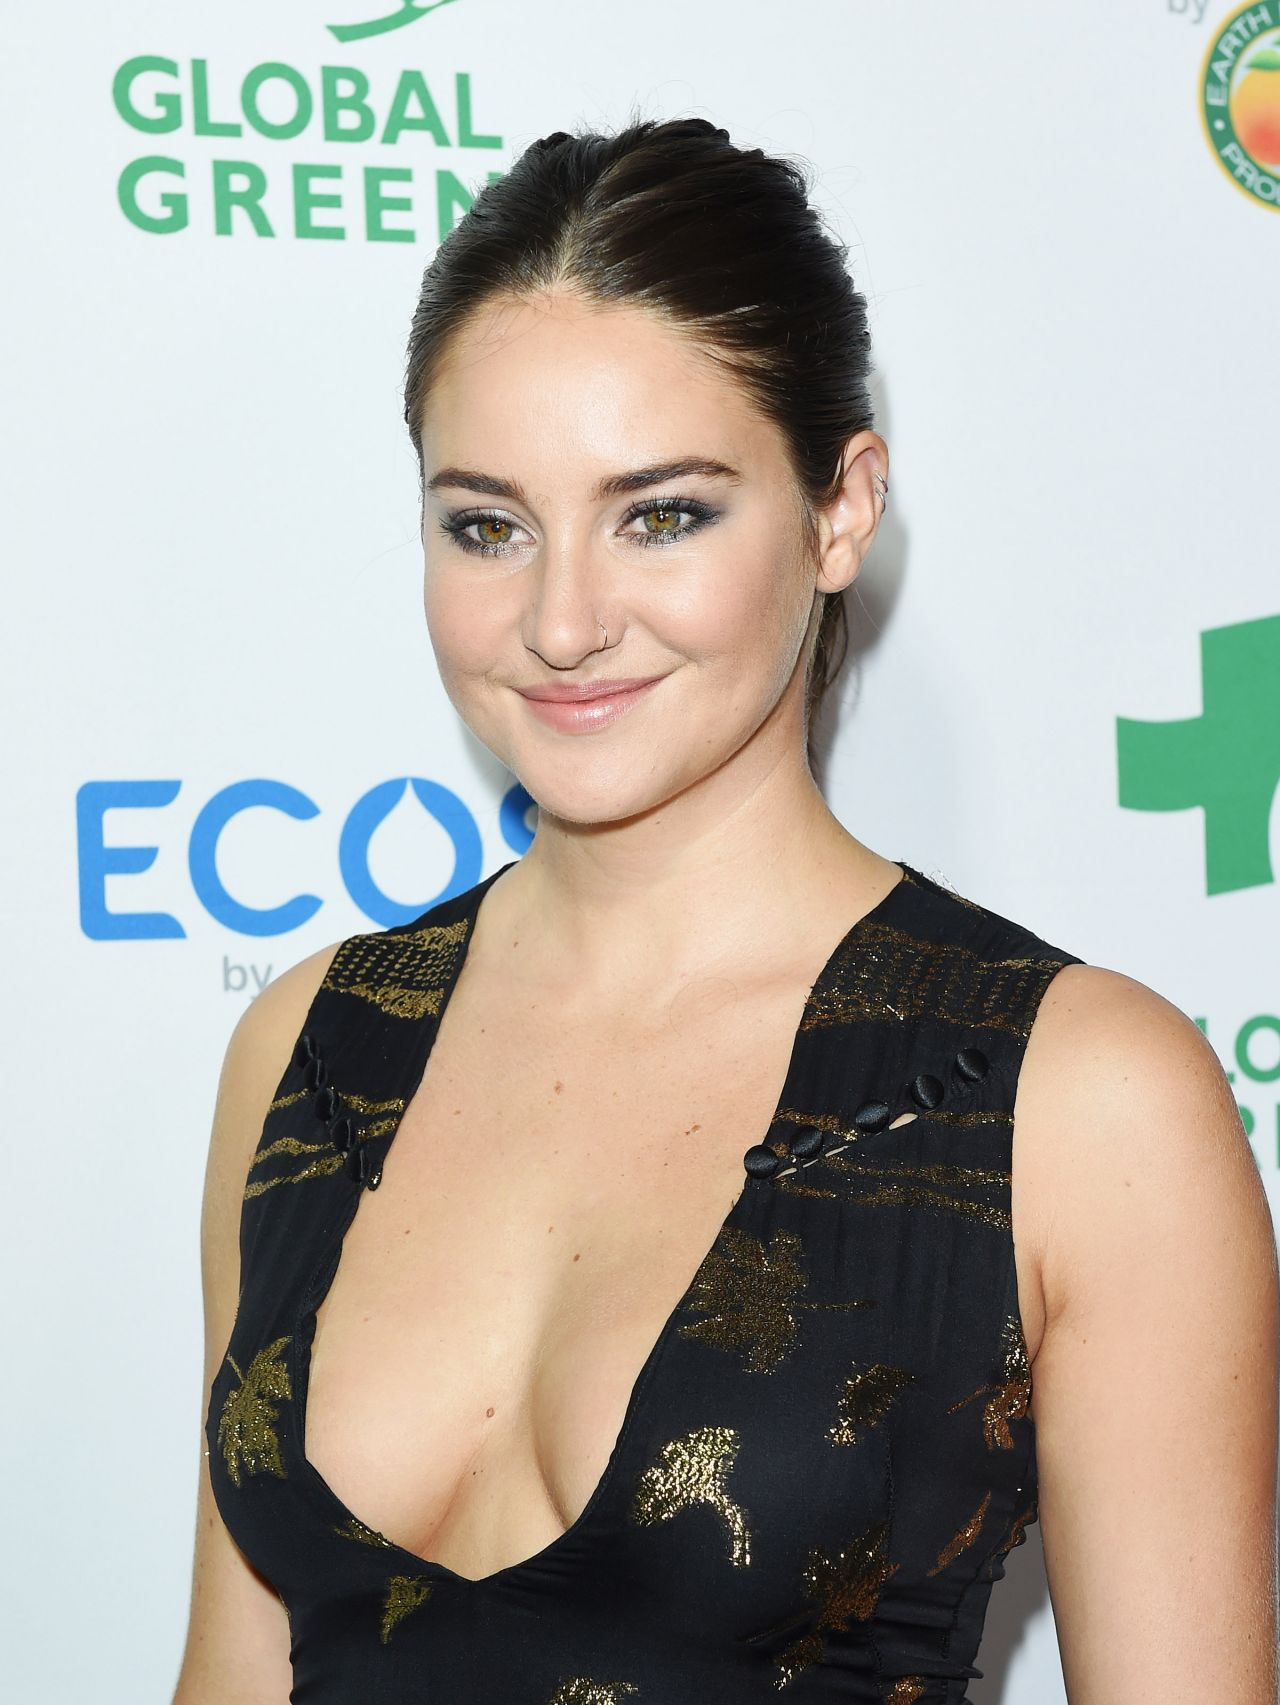 shailene-woodley-global-green-environmental-awards-in-los-angeles-9-29-2016-7.jpg